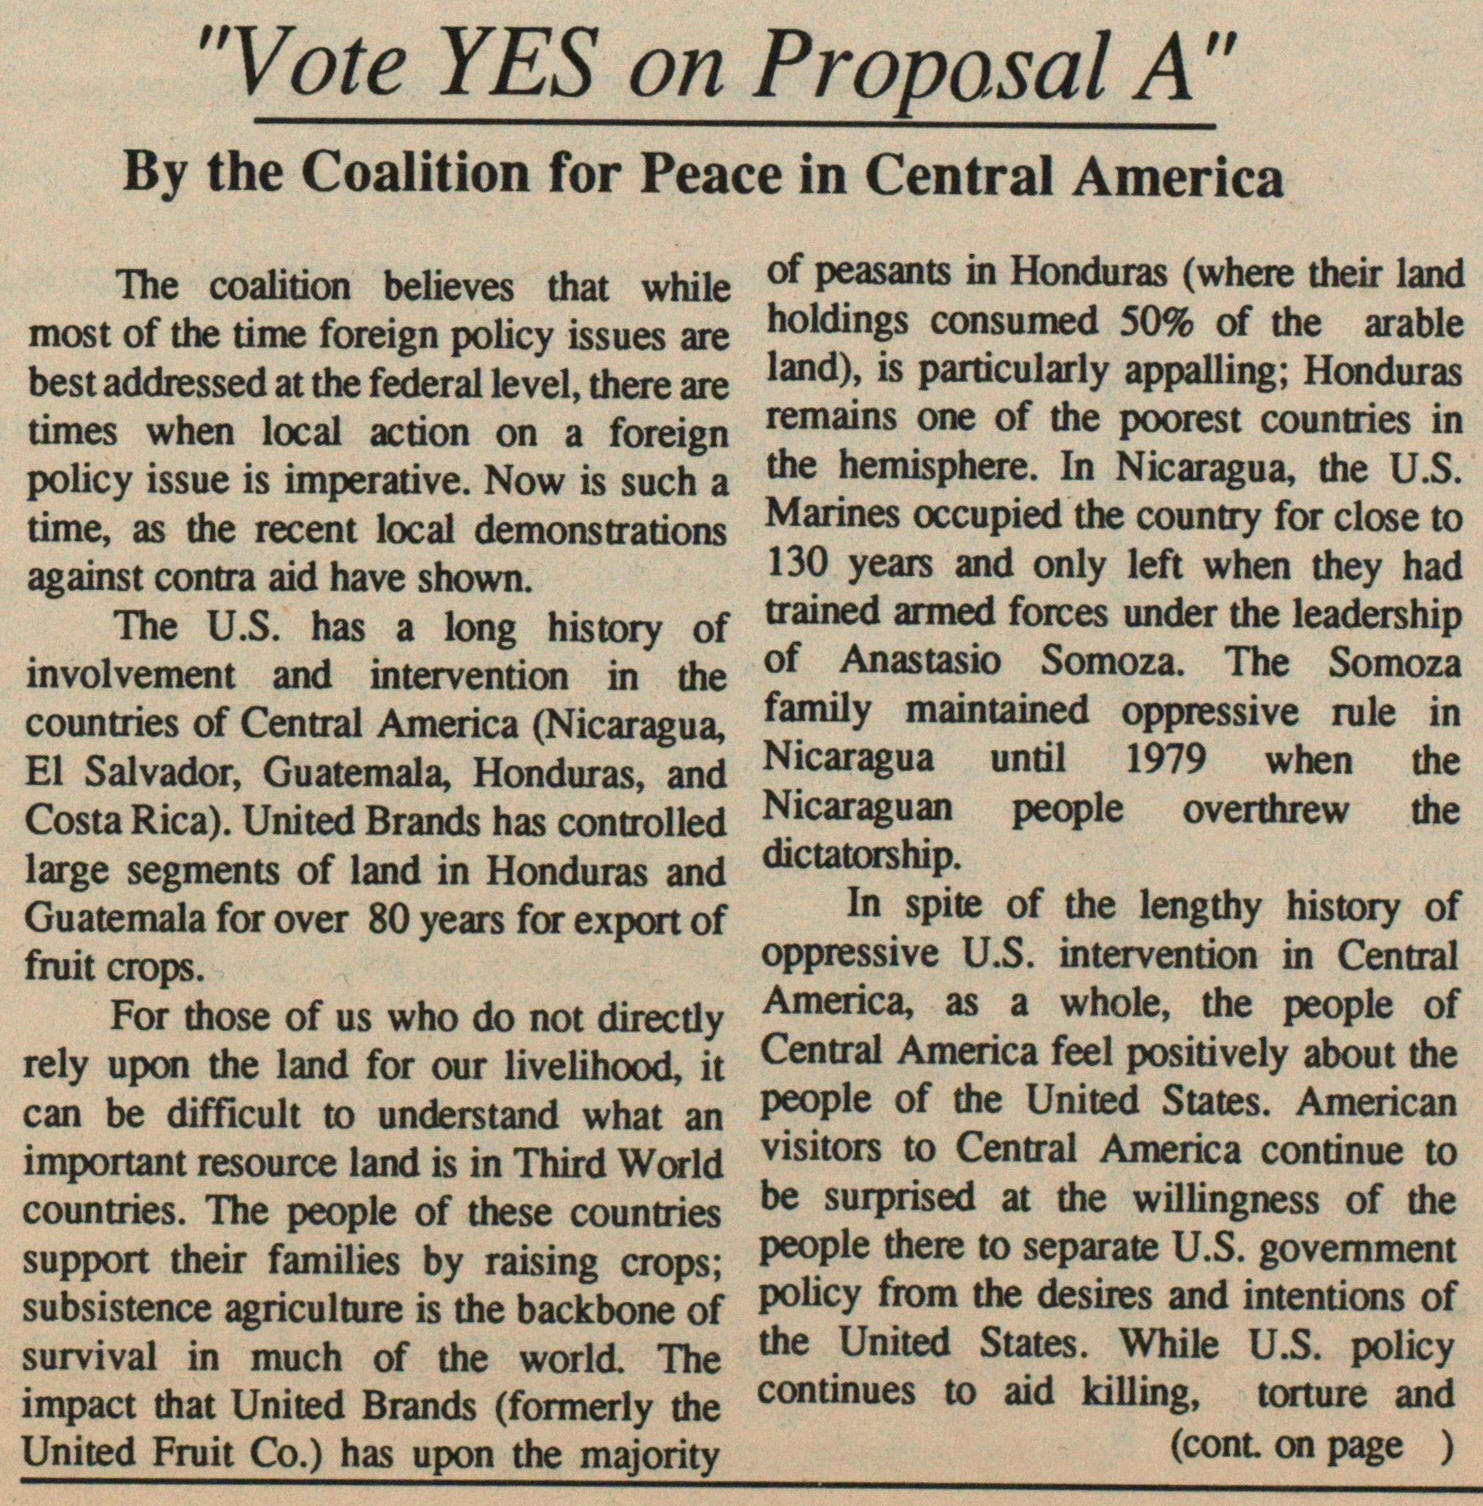 """Vote Yes On Proposal A"" image"